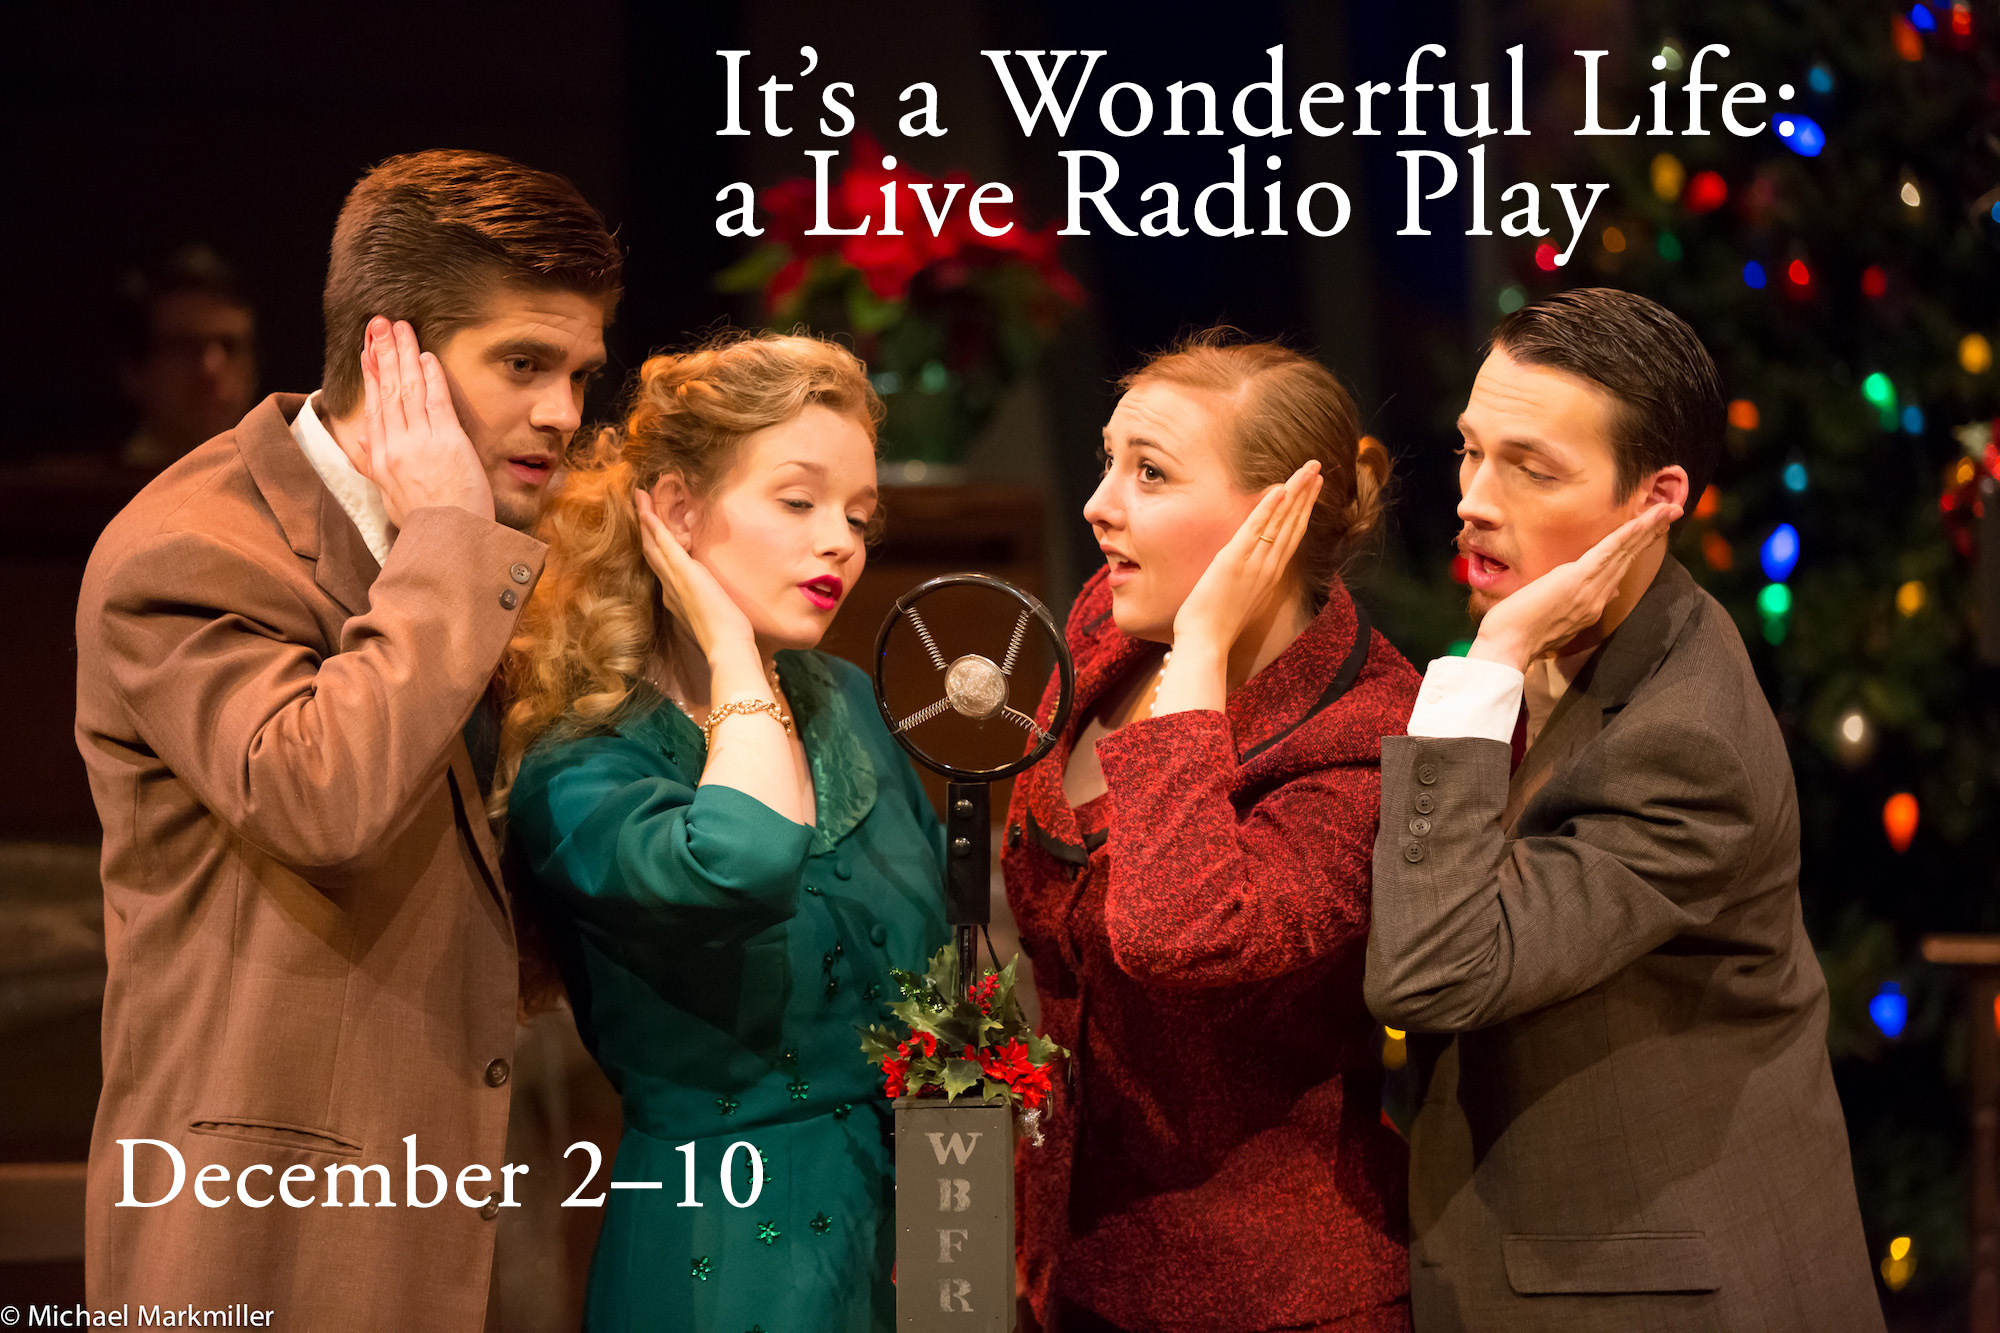 It's a Wonderful Life: A live radio play, December 2nd through 10th